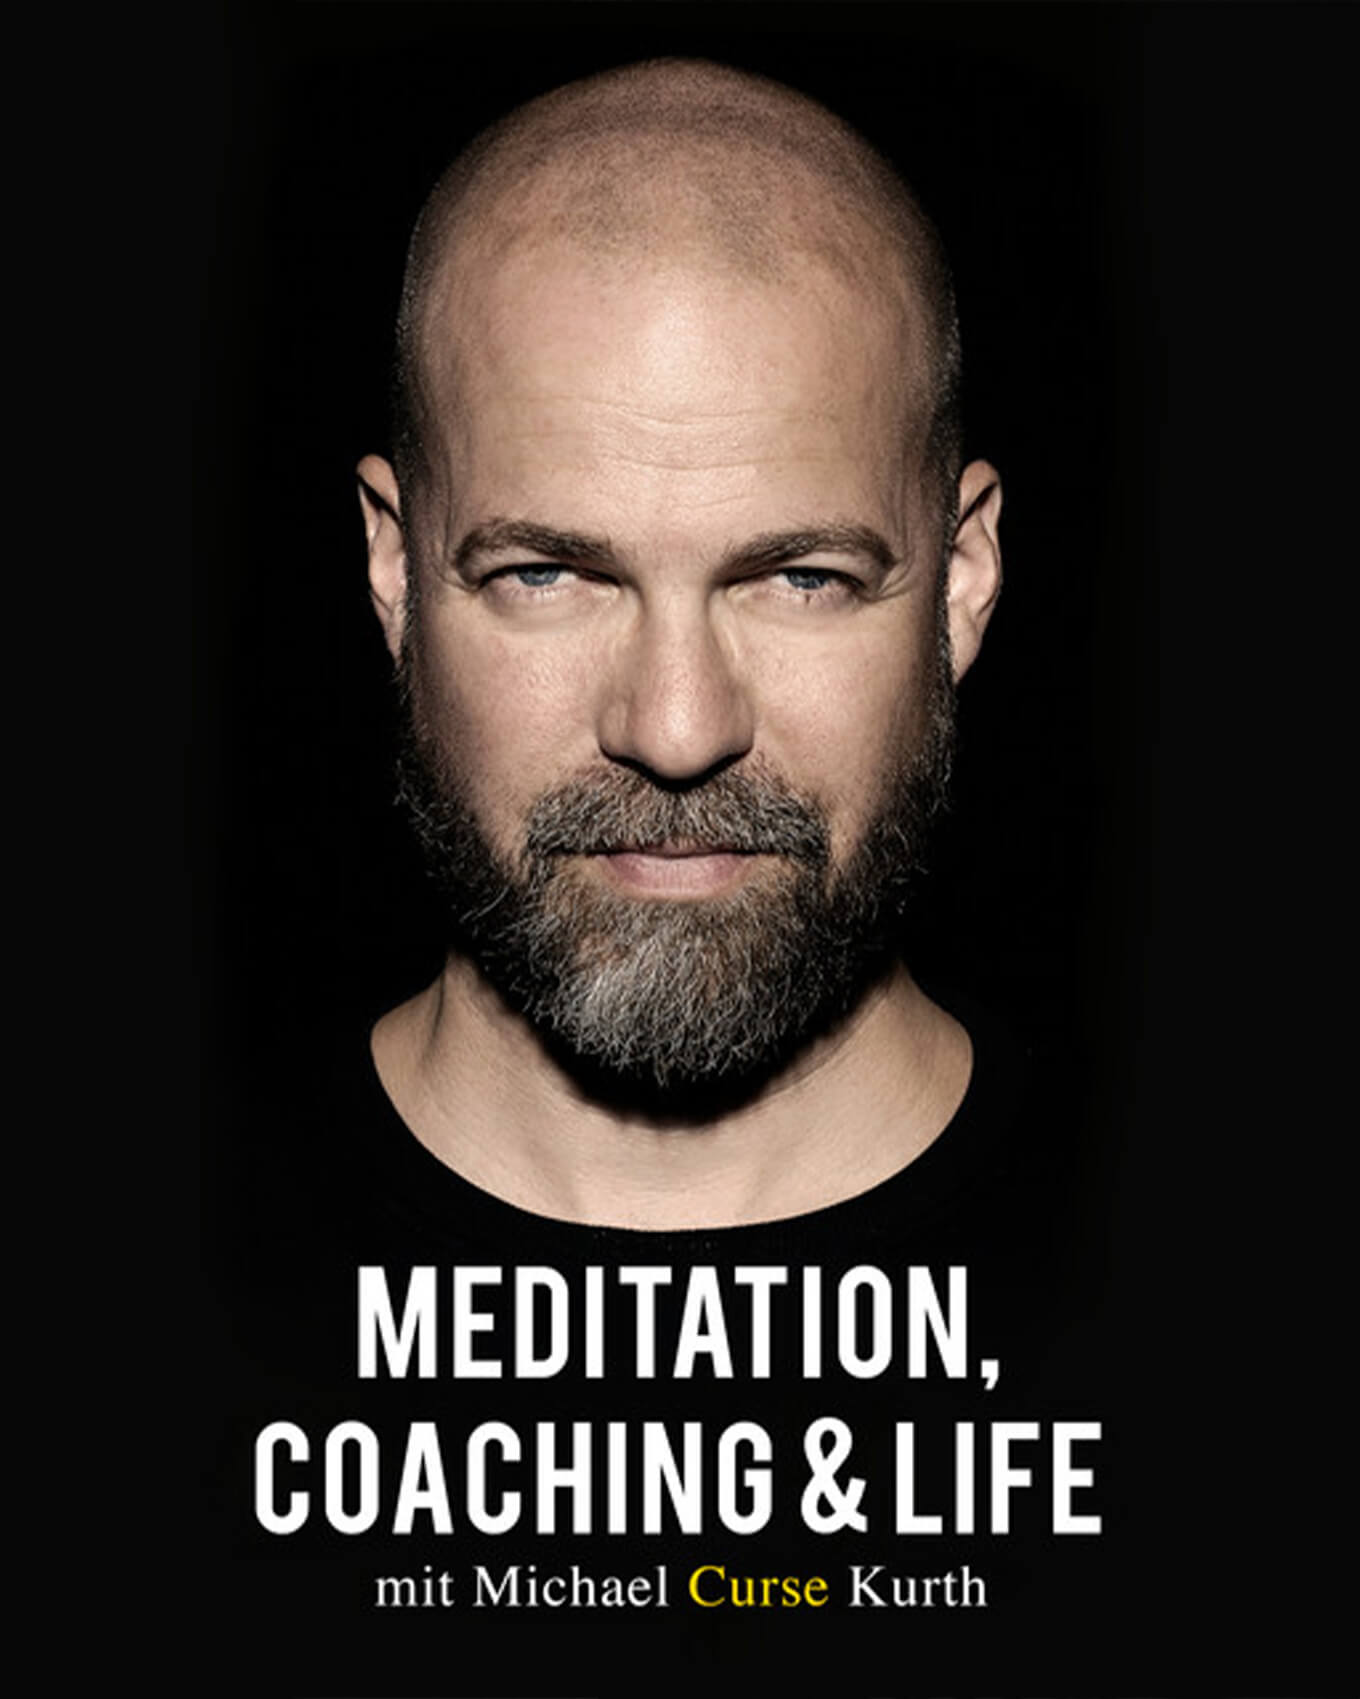 Michael Curse Kurth - Meditation, Coaching & Life